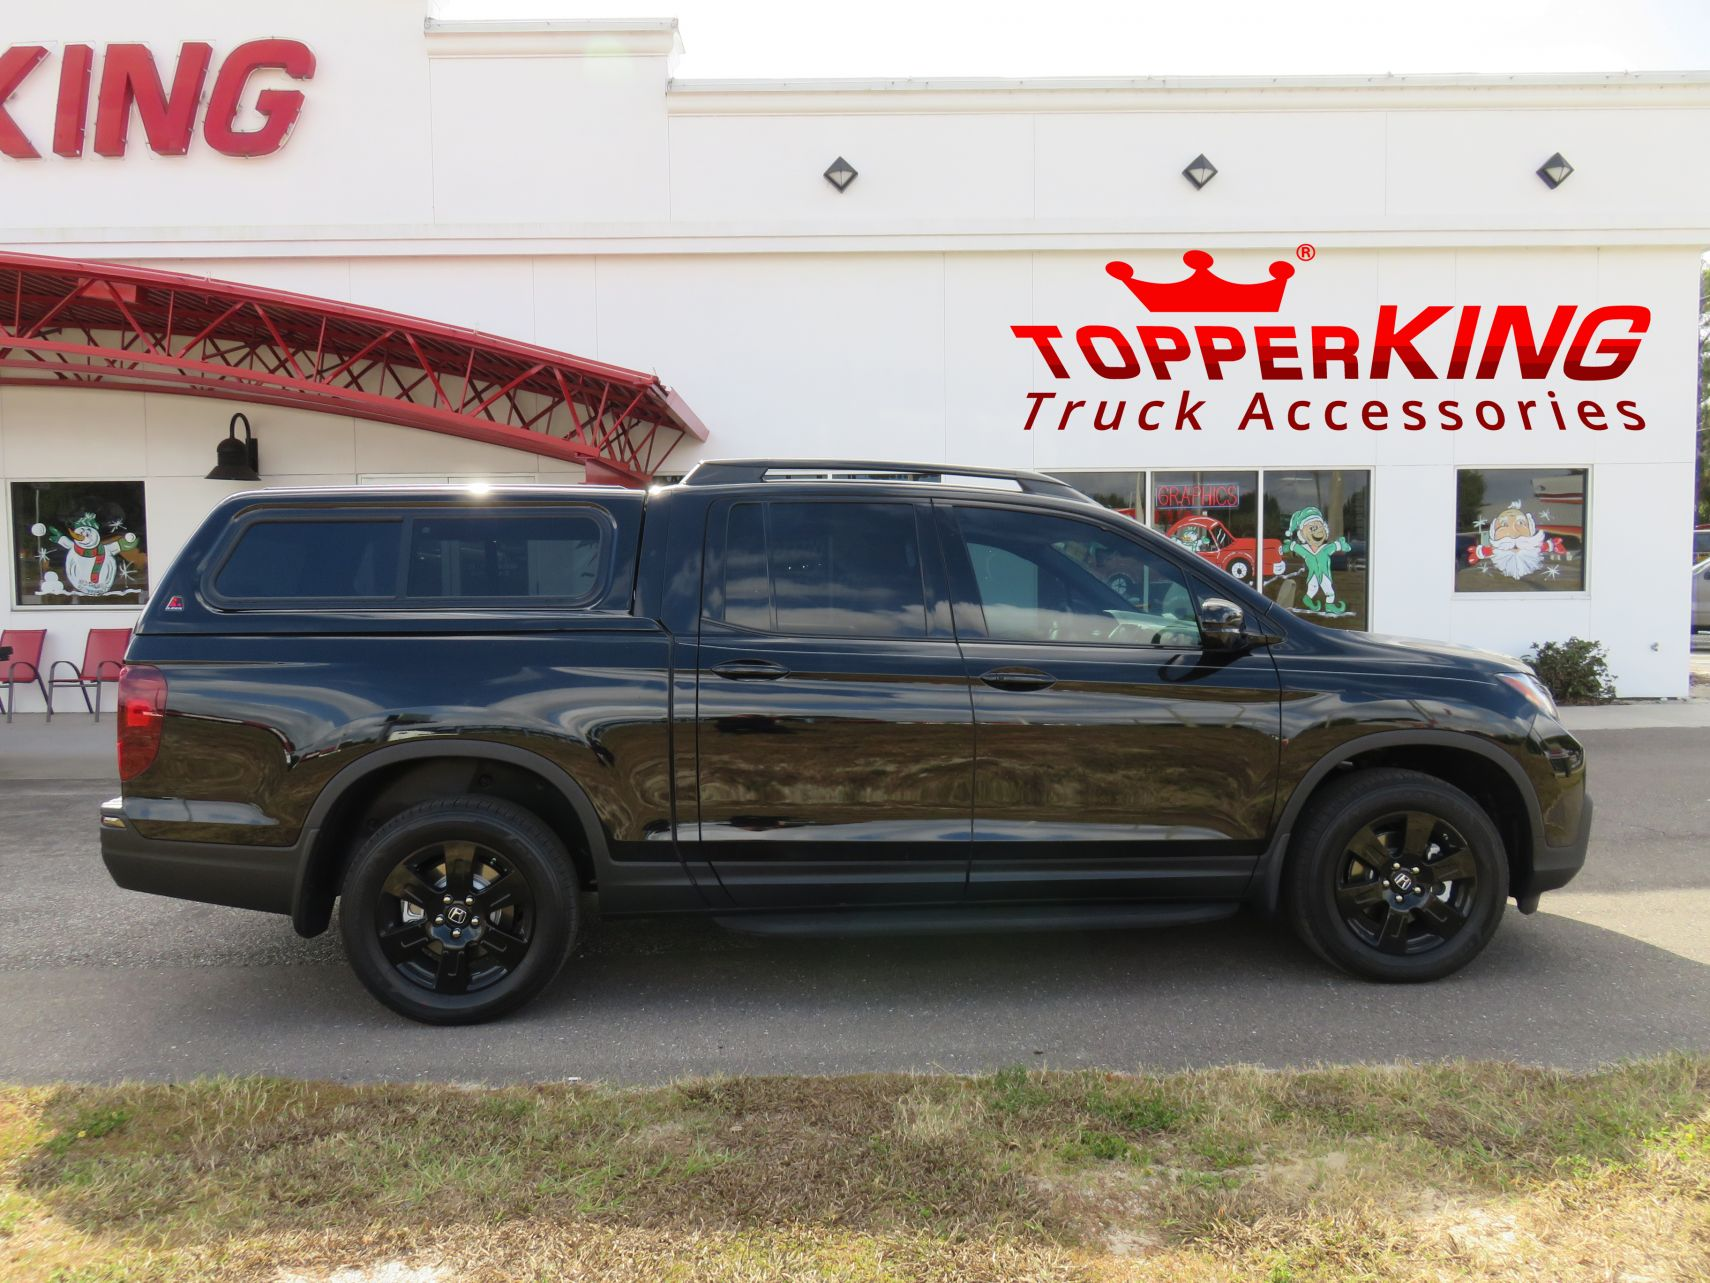 2017 Honda Ridgeline LEER 100XR with running boards, roof racks, and a custom hitch by TopperKING in Brandon, FL 813-689-2449 Call today to start on your truck!